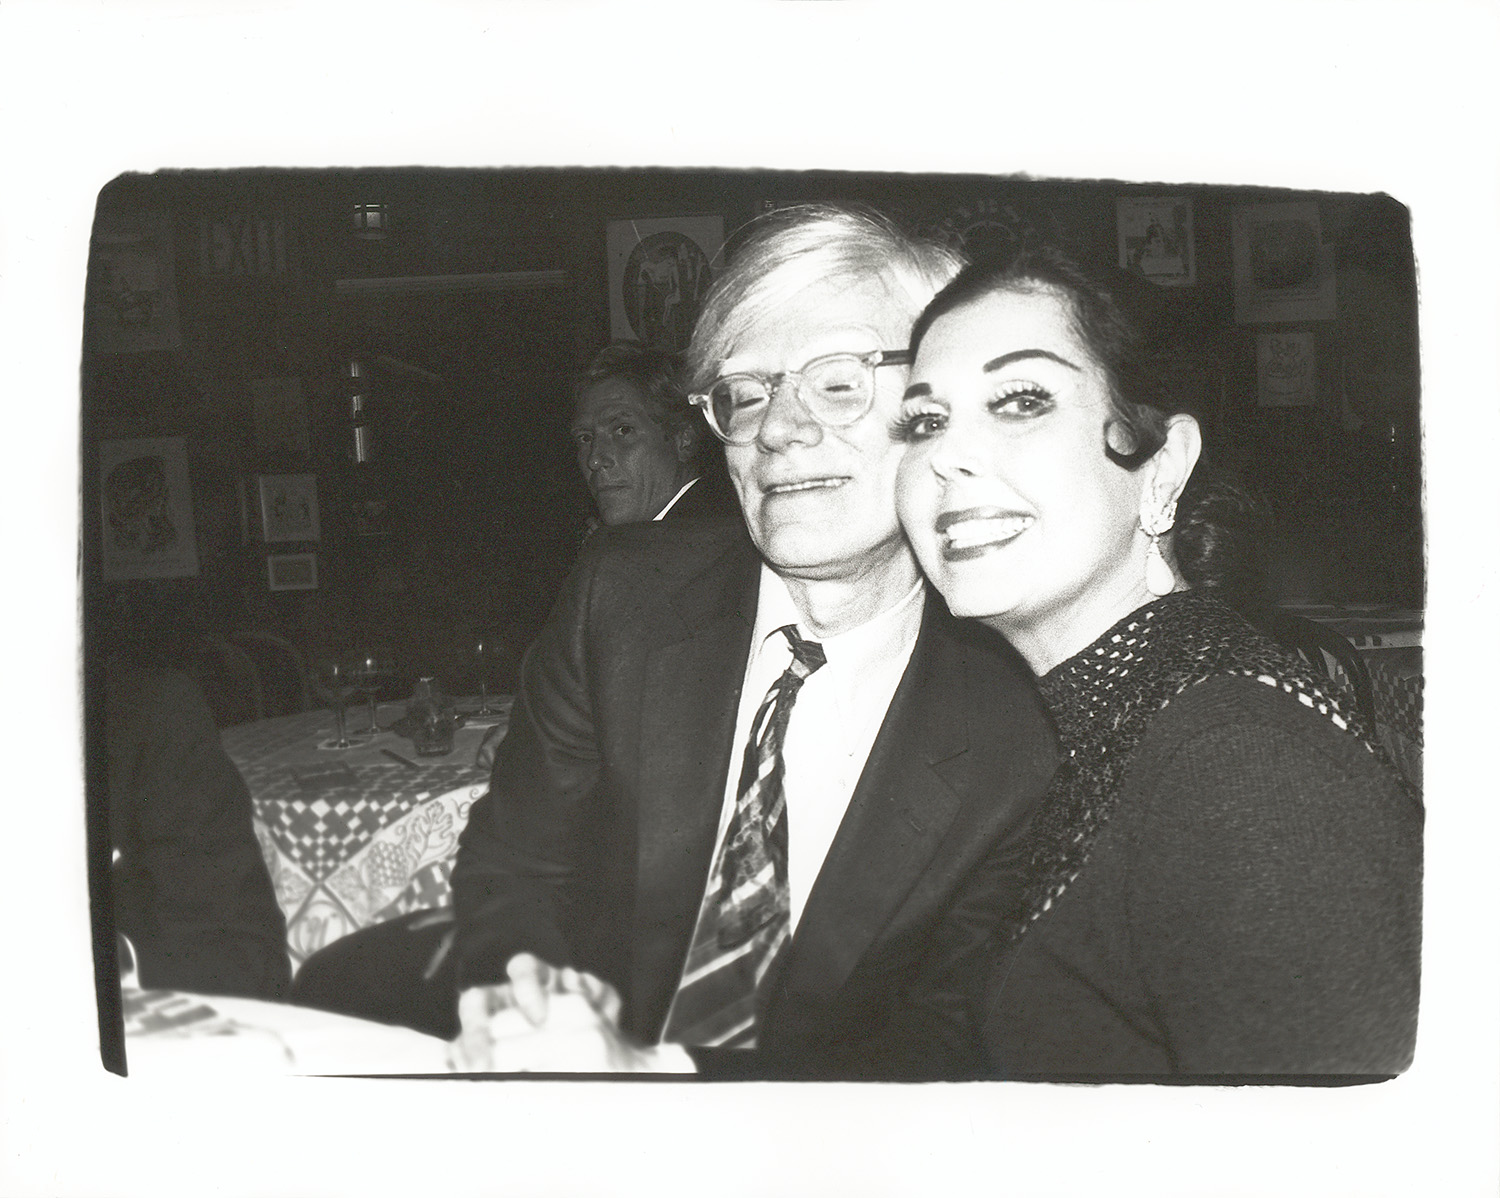 Warhol with Ann Miller, one of the many stars of silver screen he befriended.